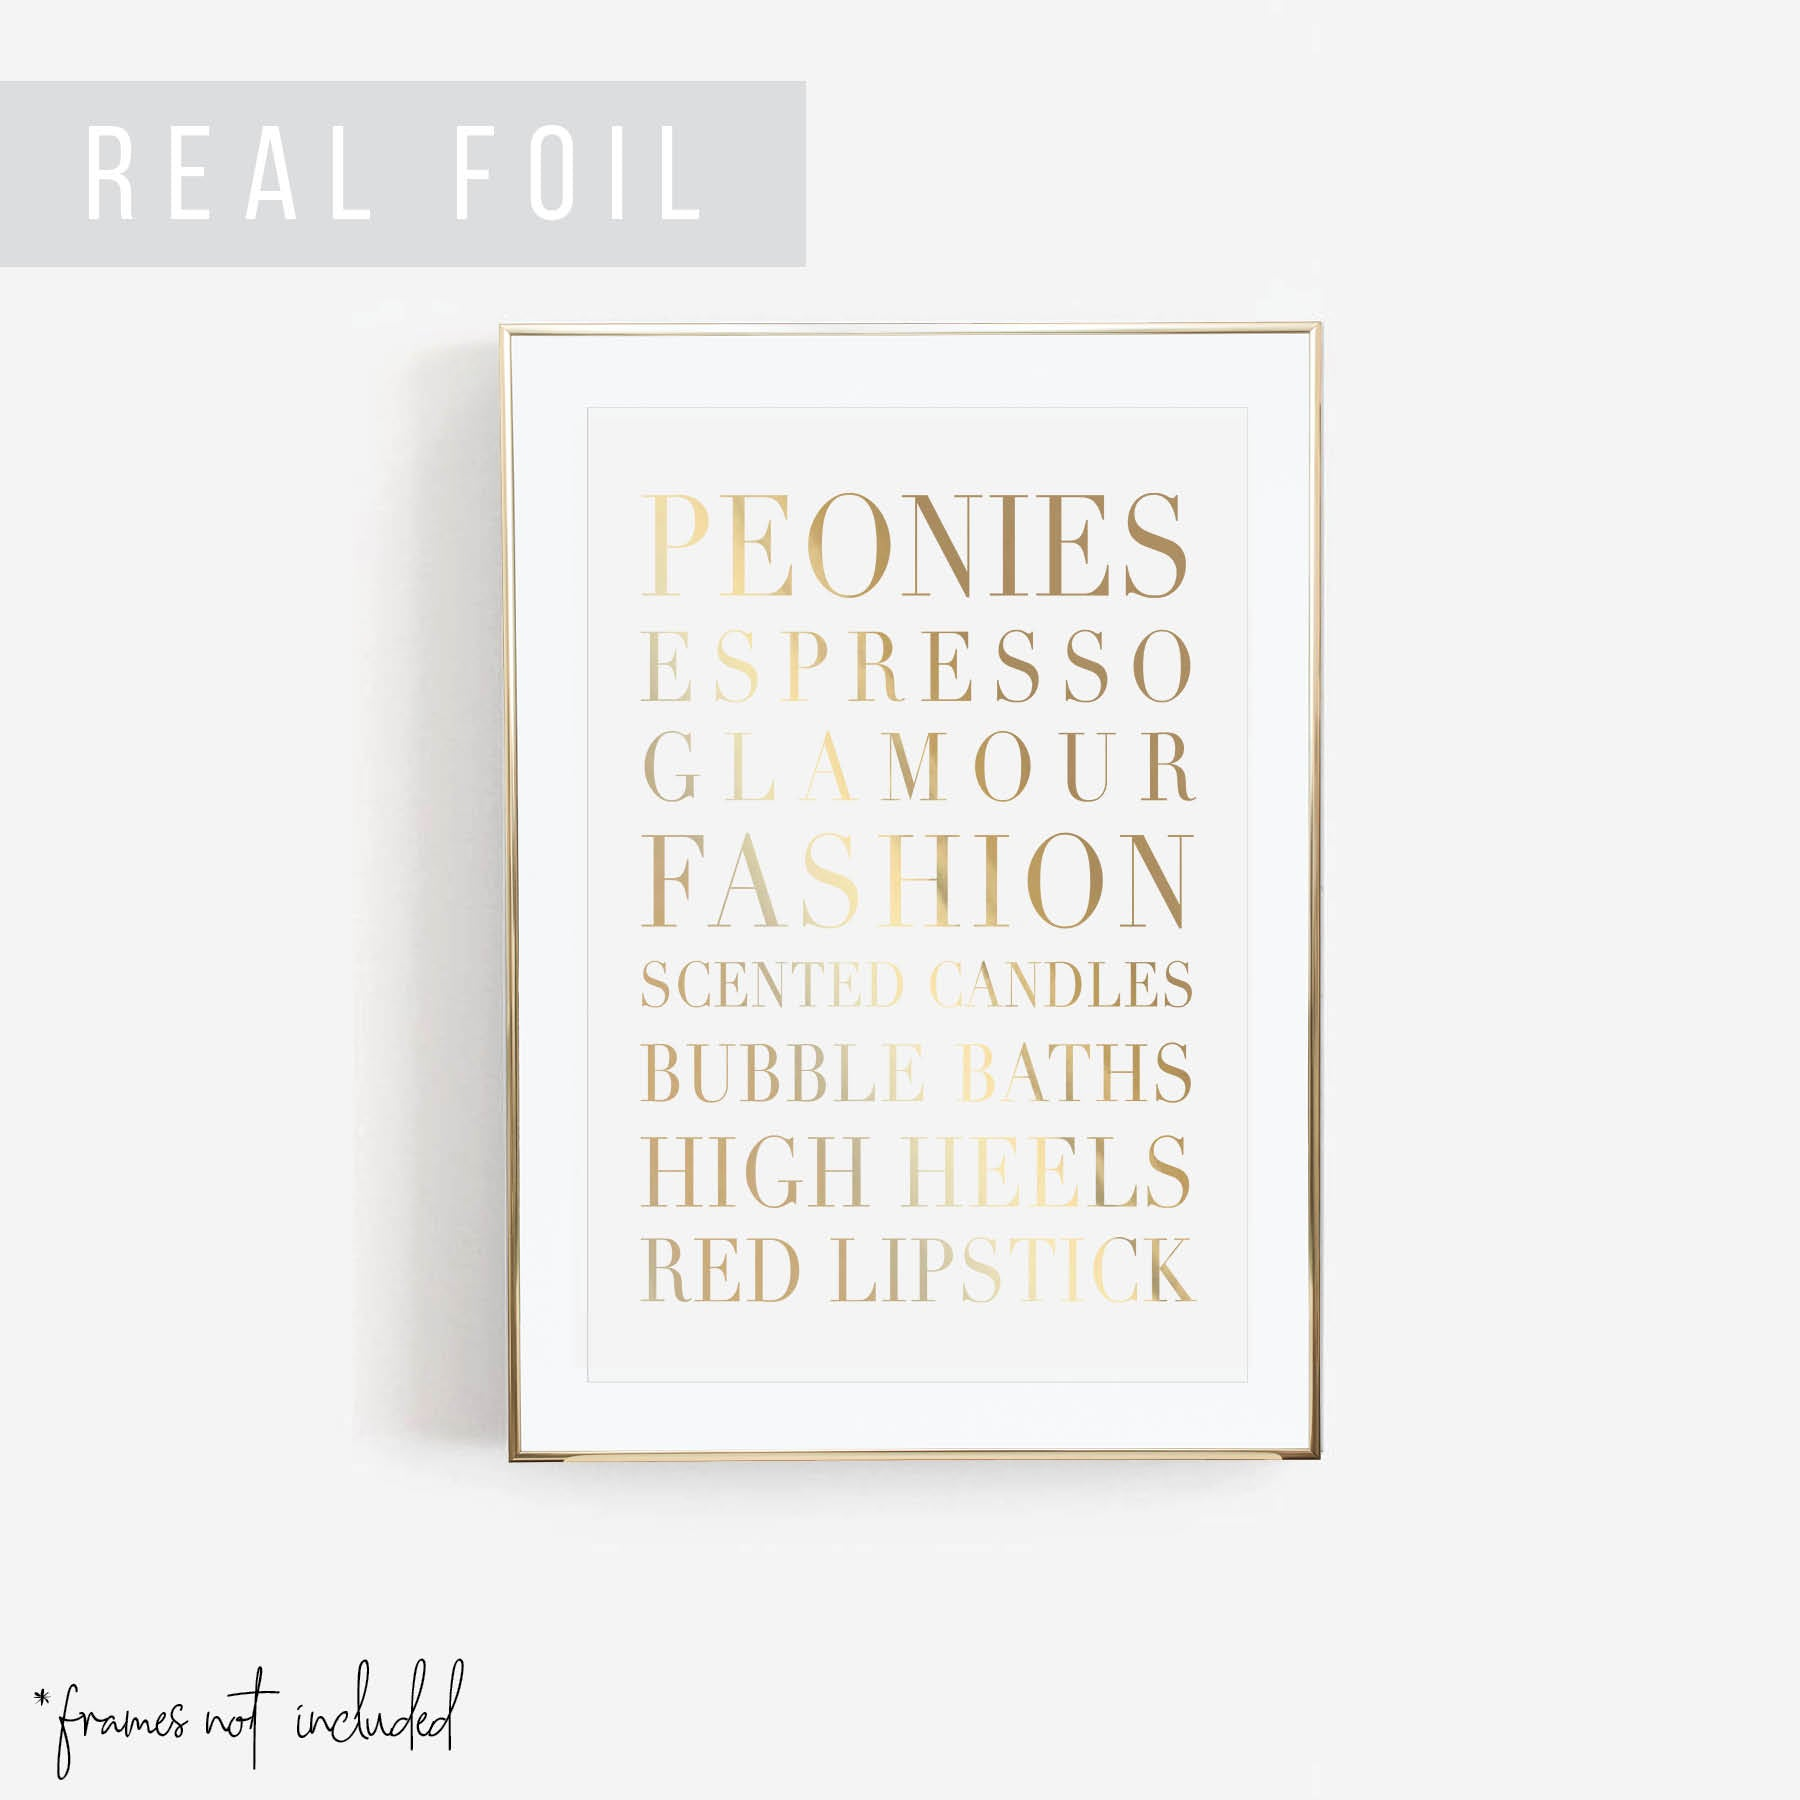 Fashion Words Foiled Art Print